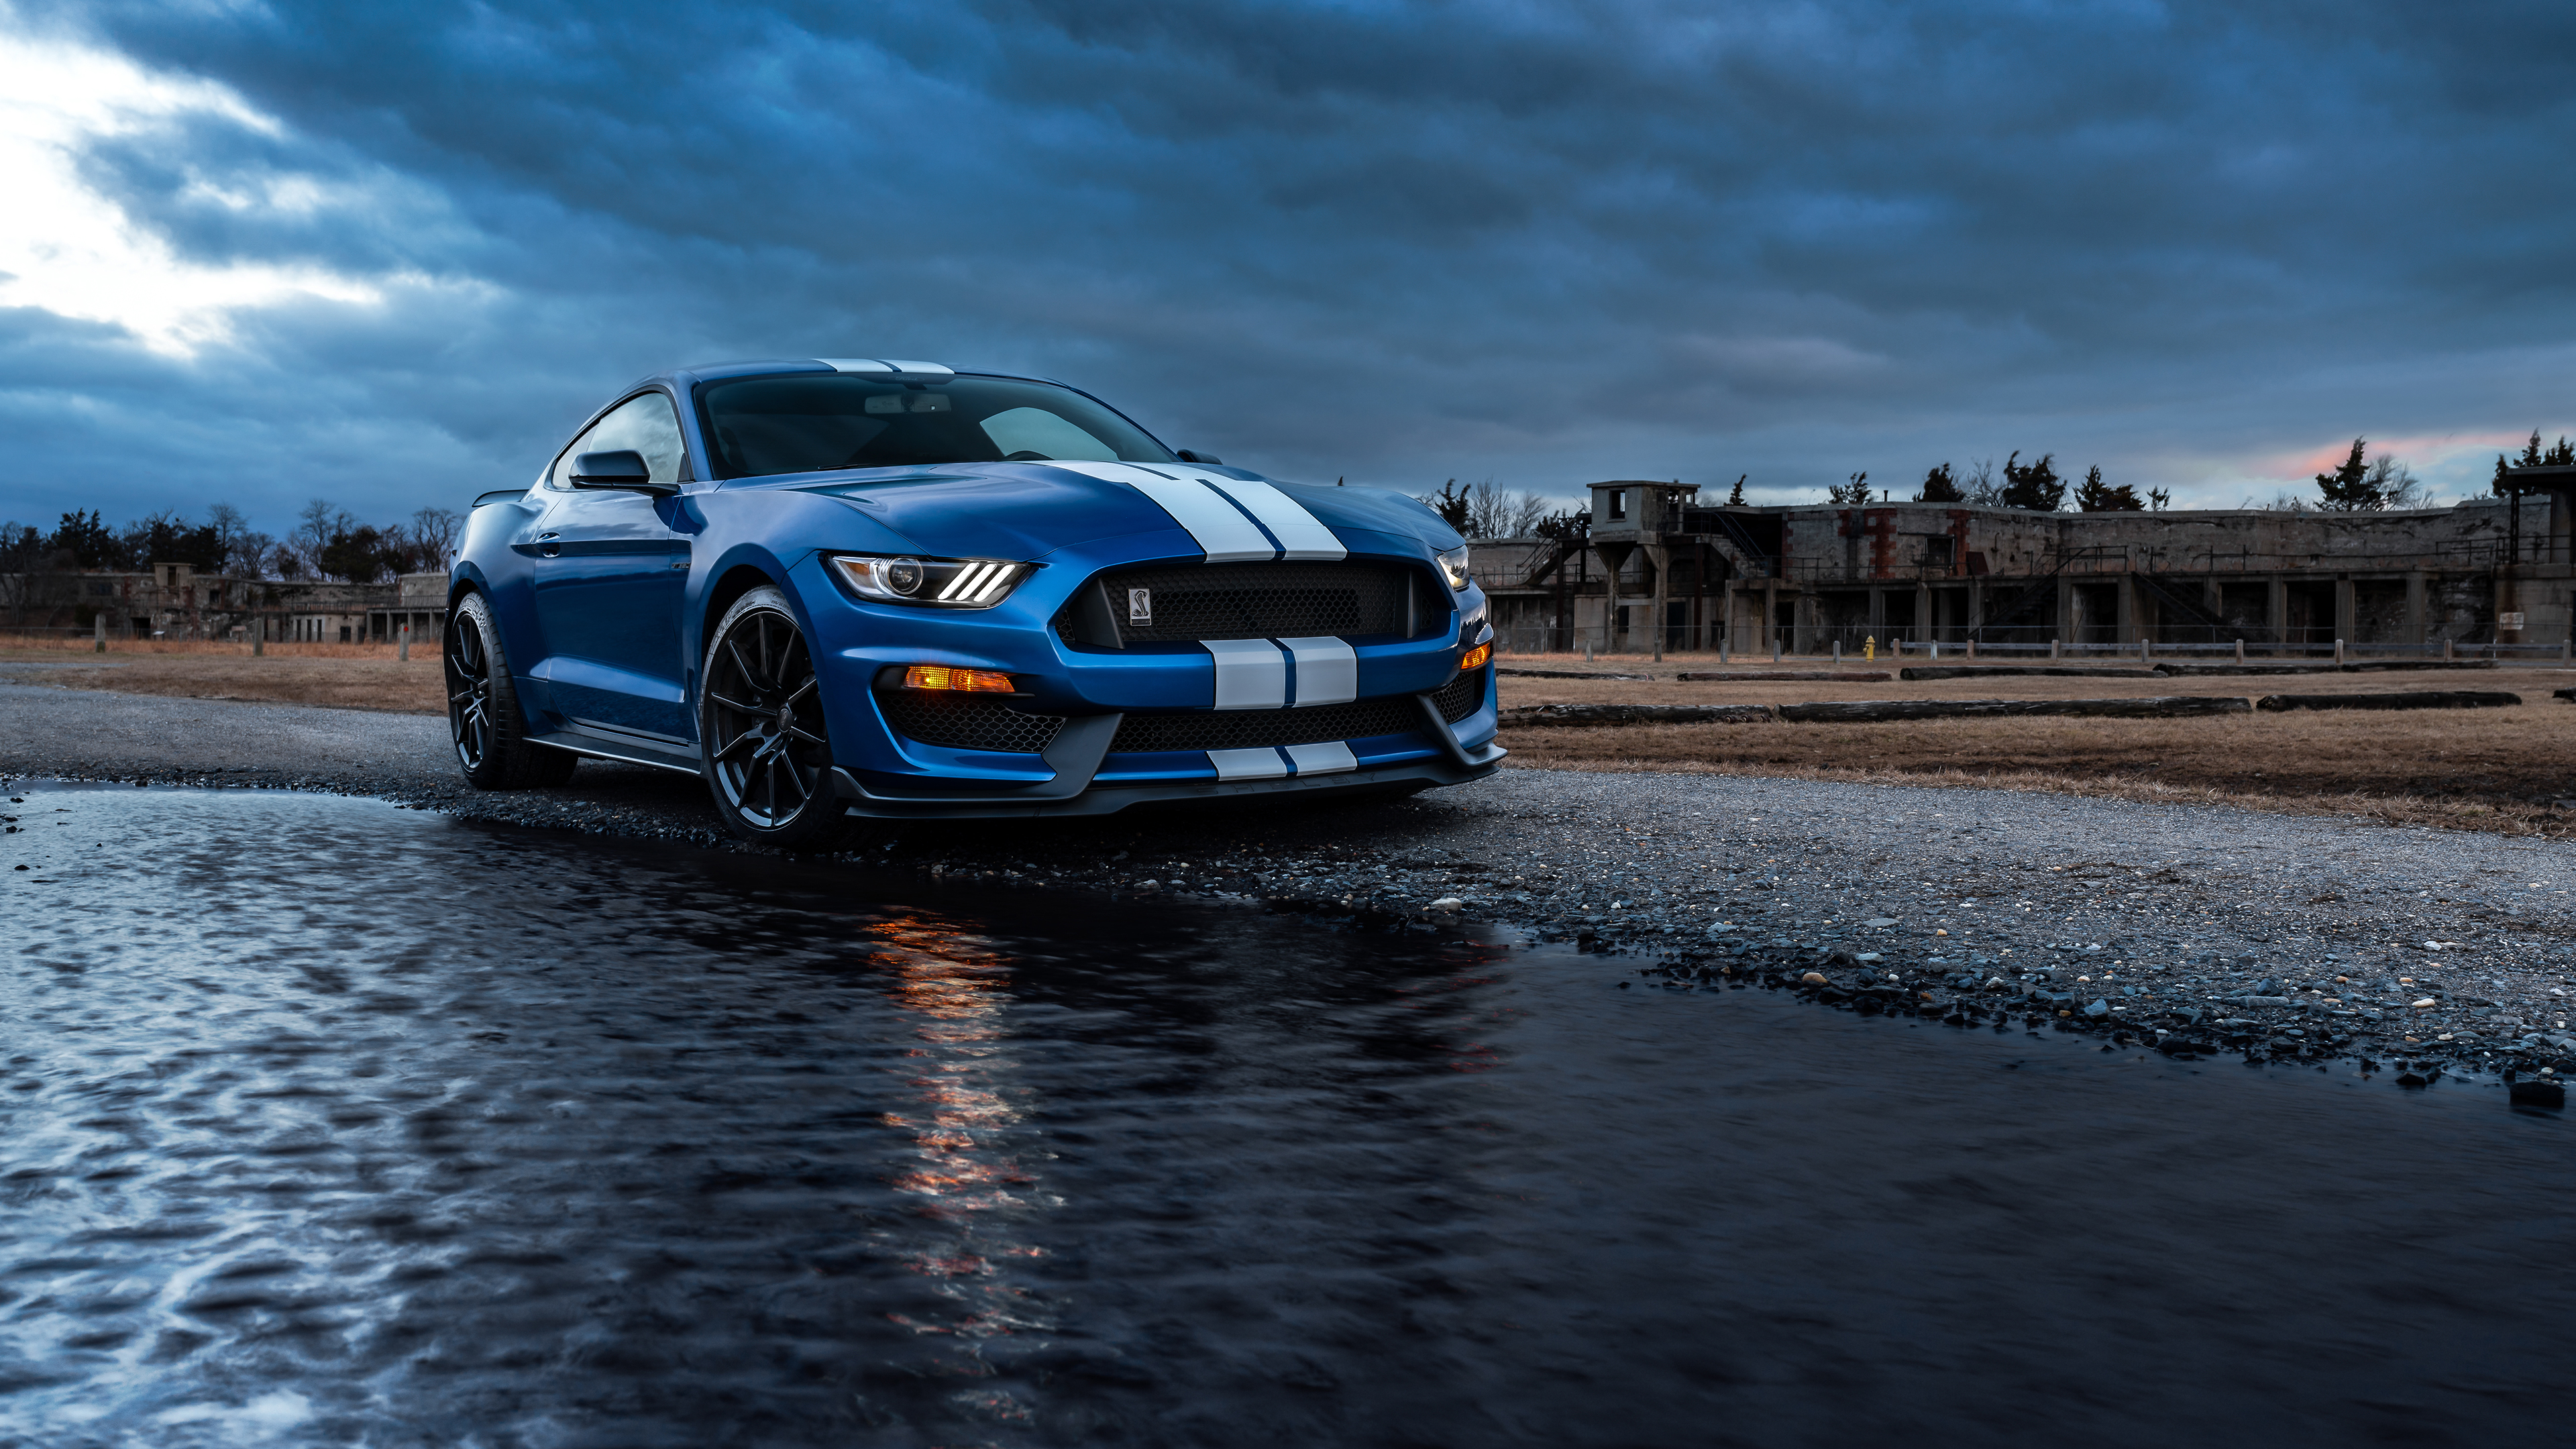 Free Download 2020 Ford Mustang Shelby Gt500 4k Wallpapers Hd Wallpapers 4096x2304 For Your Desktop Mobile Tablet Explore 61 Android Mobile 2020 Hd Wallpapers Android Mobile 2020 Hd Wallpapers